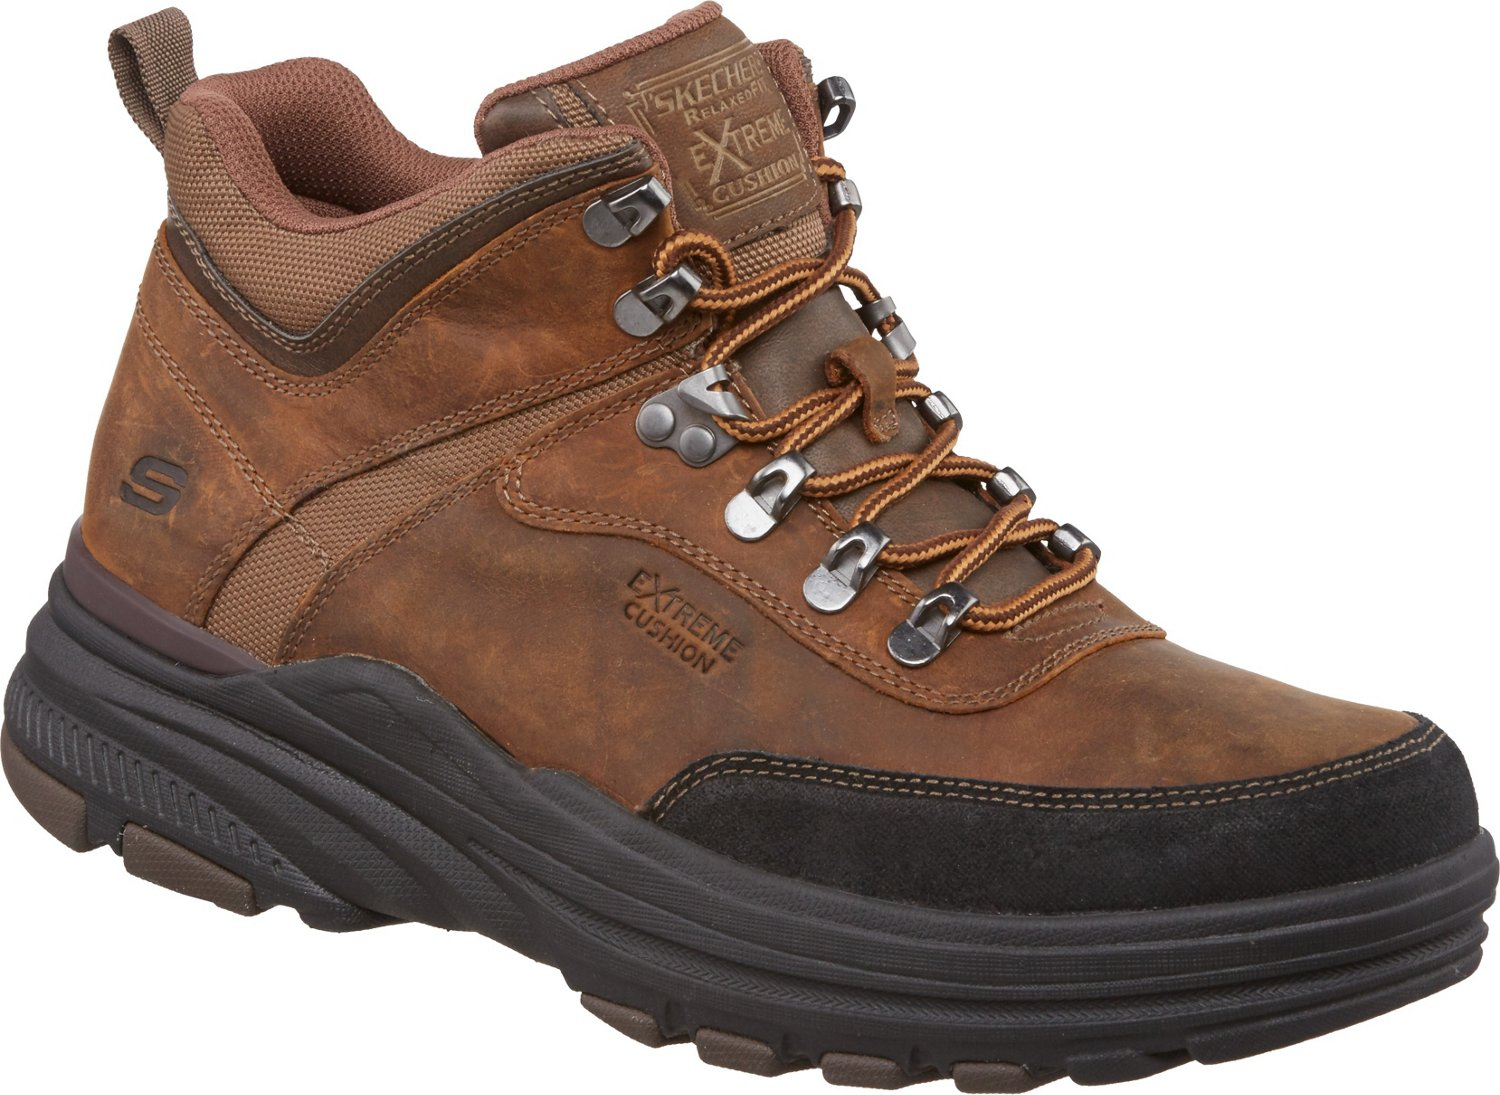 bc79753664d88f Display product reviews for SKECHERS Men s Holdren Brenton Casual Boots